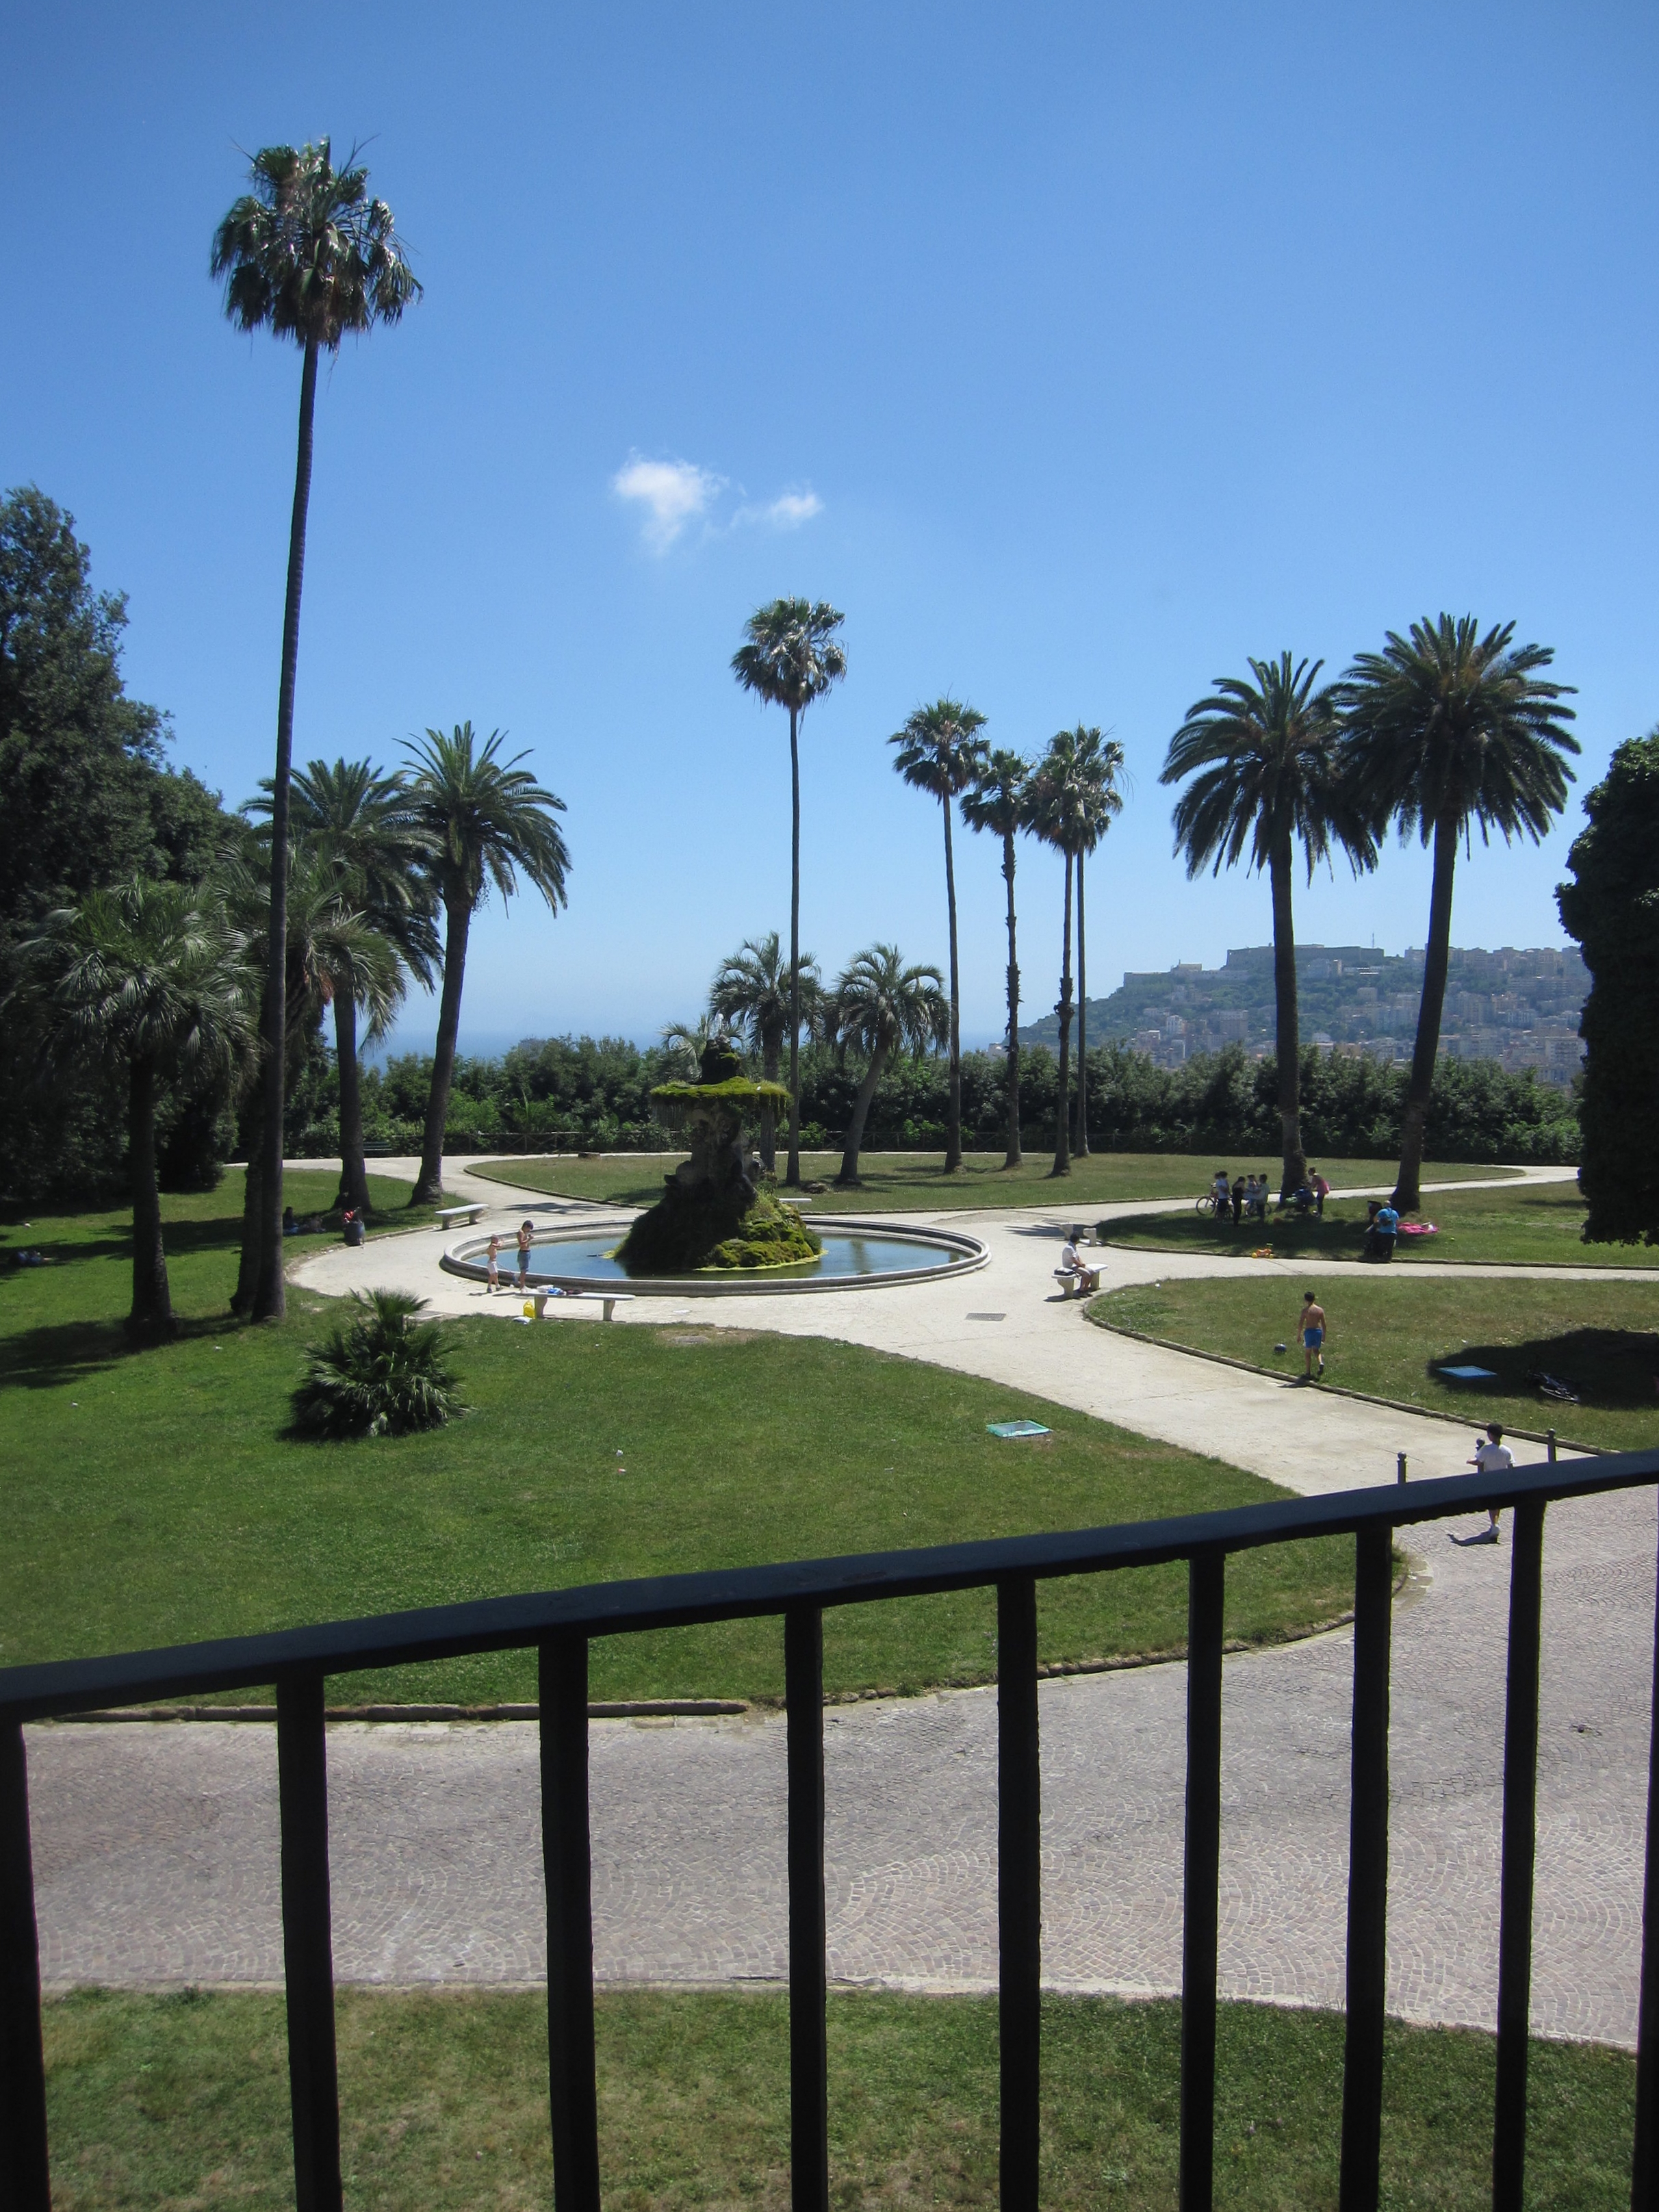 View of the park.